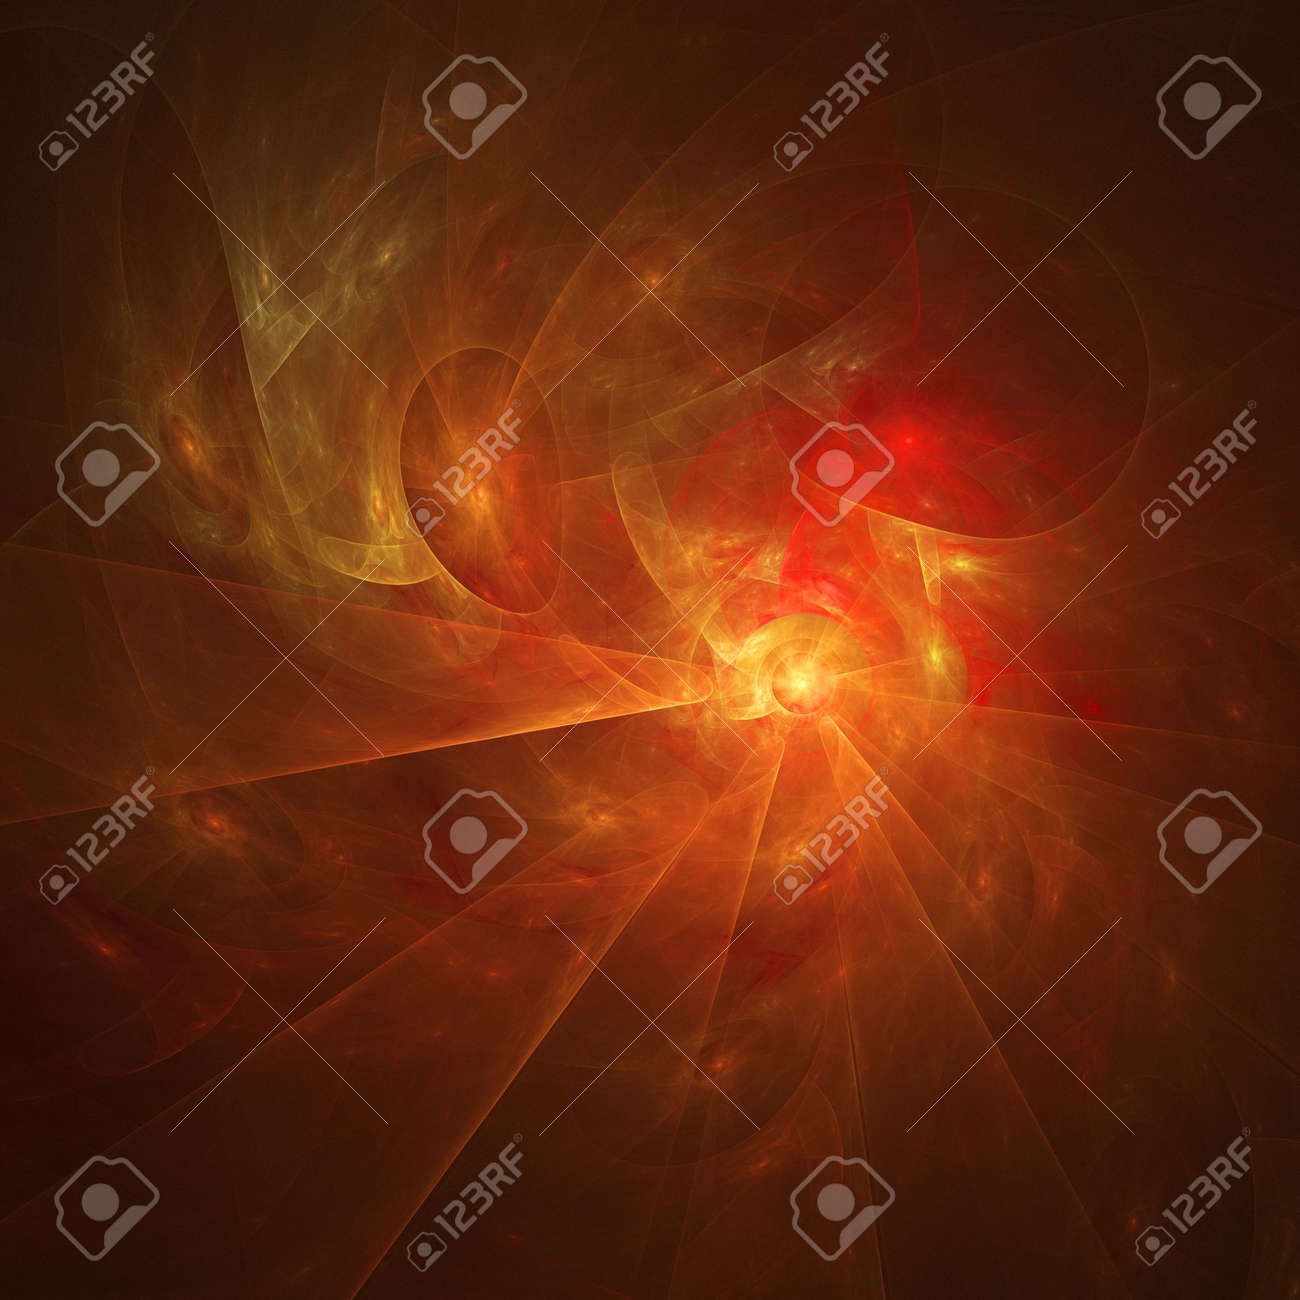 abstract chaos fire burn rays on dark background Stock Photo - 2470228